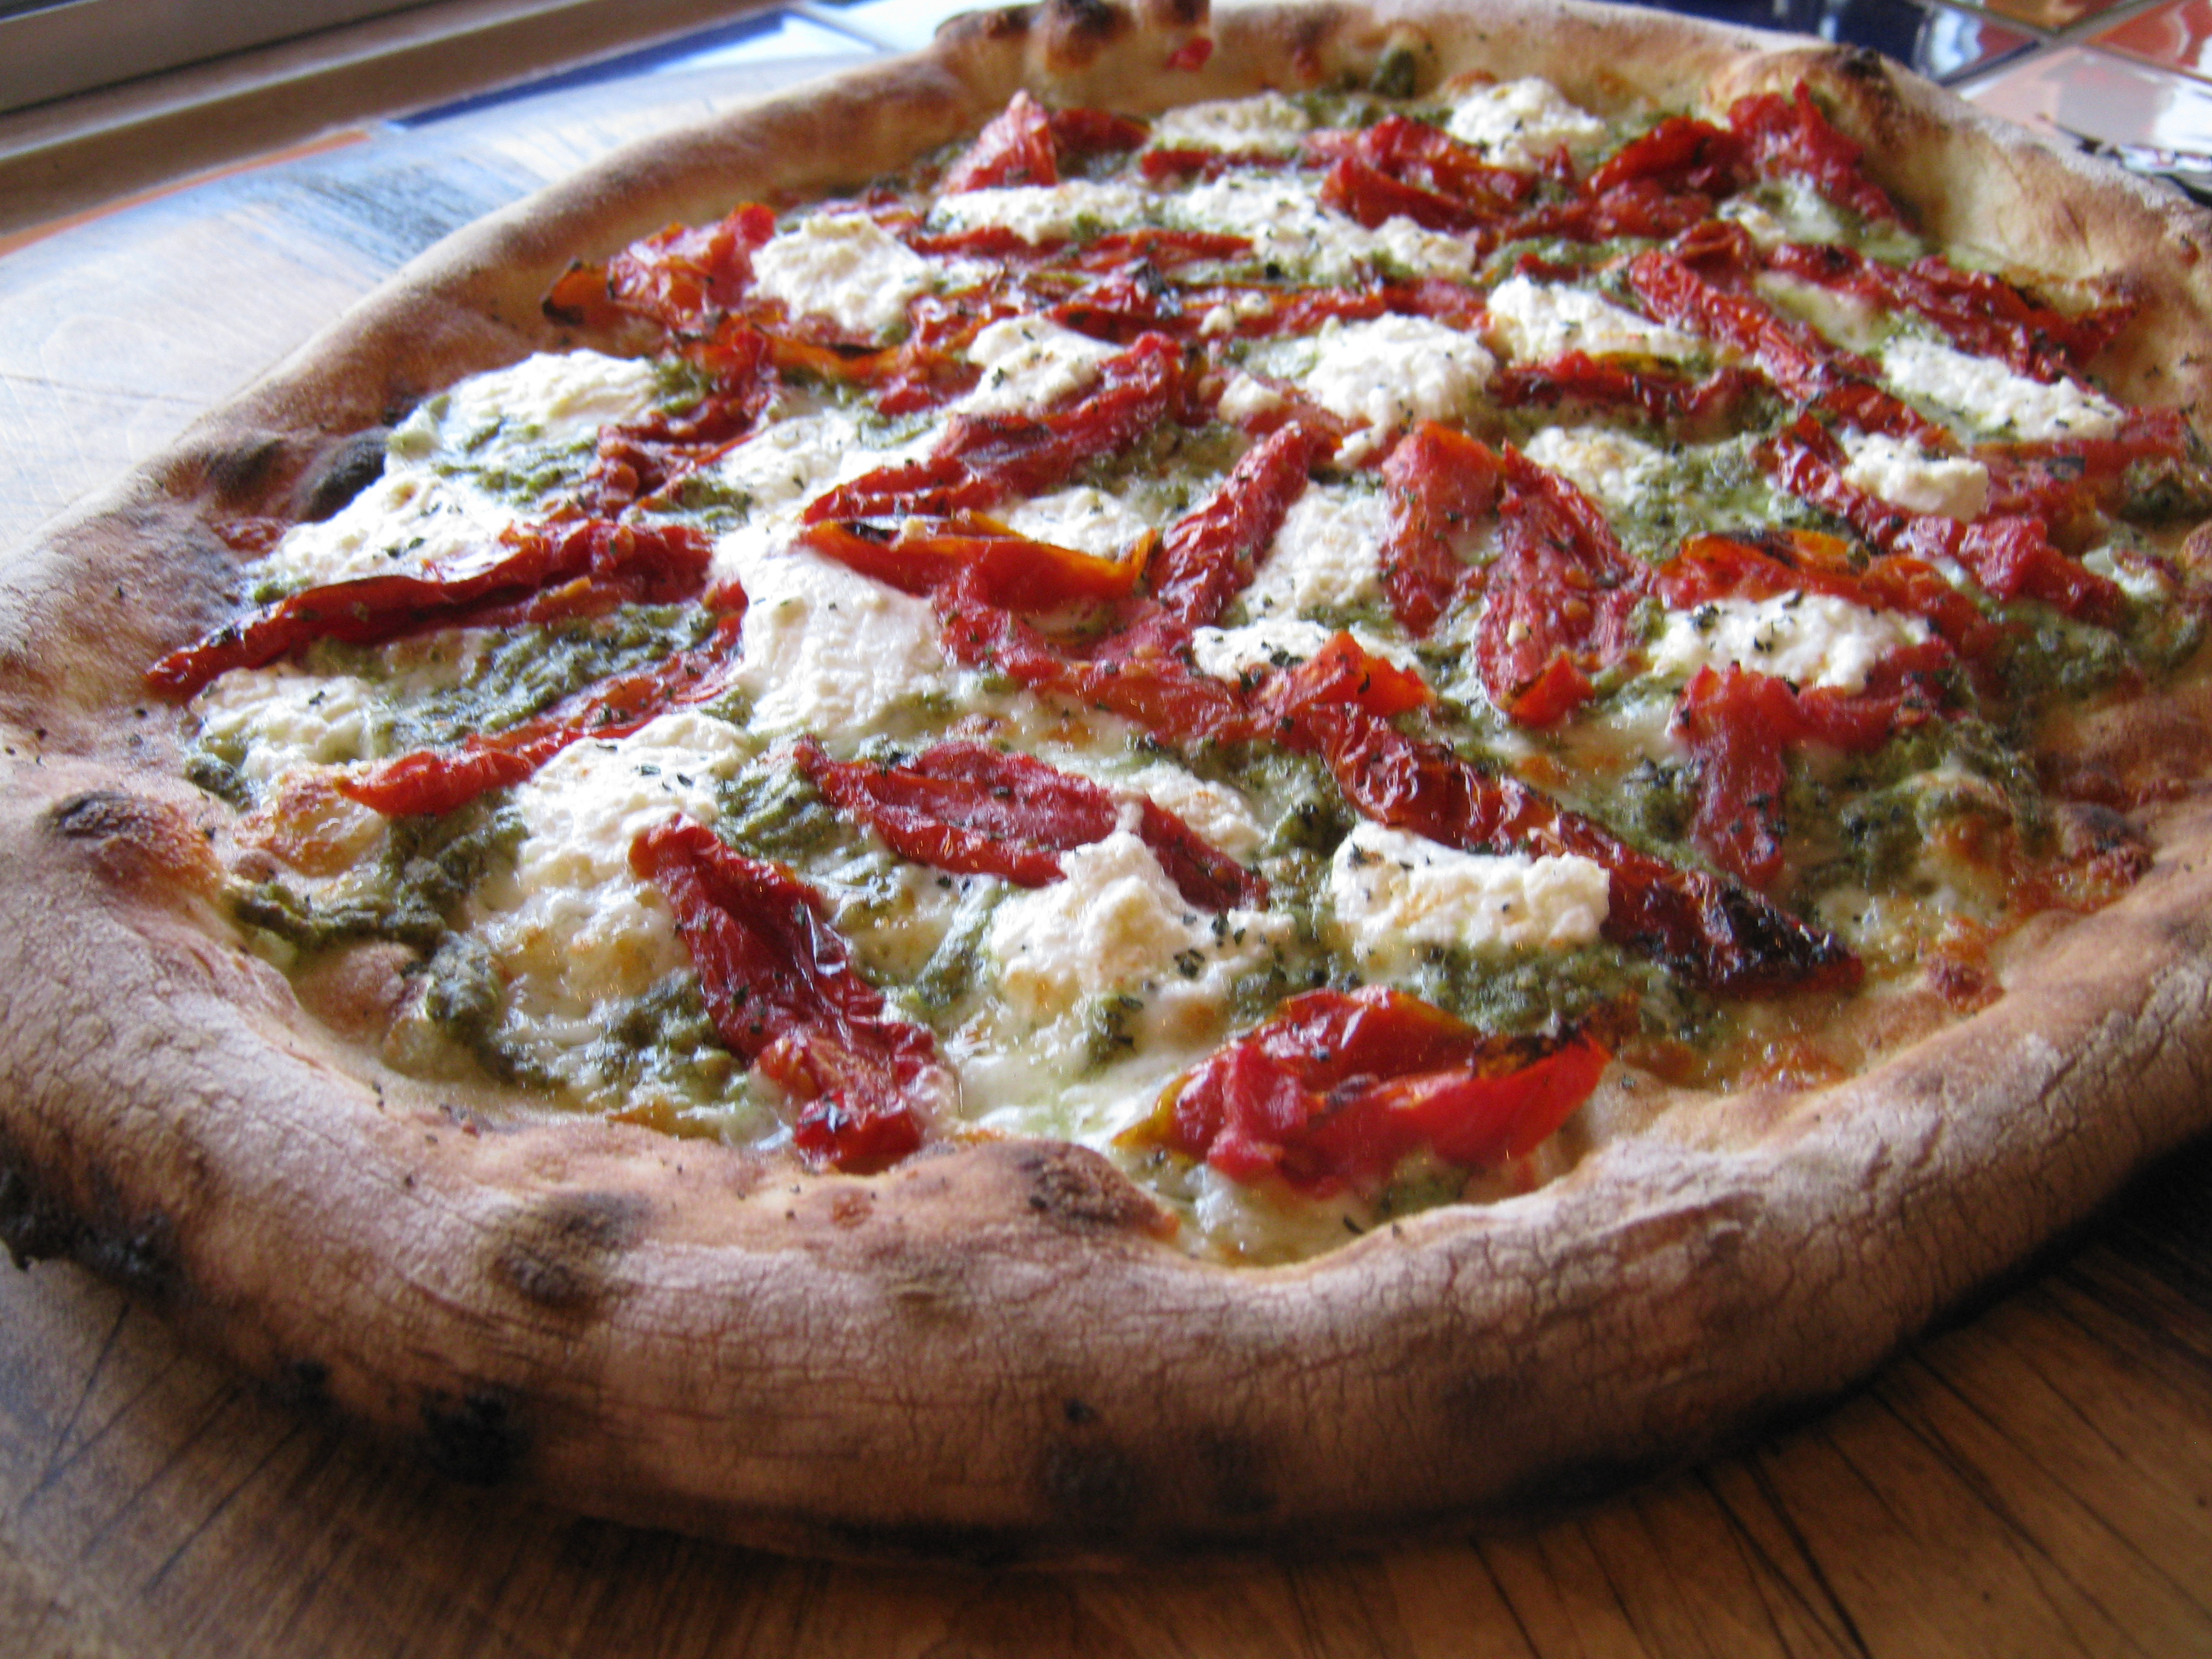 Indian Paintbrush Pizza is made with cilantro pesto, ricotta, and semi dried tomatoes. I addition to pizza, Wy'east will offer salads, appetizers and dessert, along with seasonal beers.